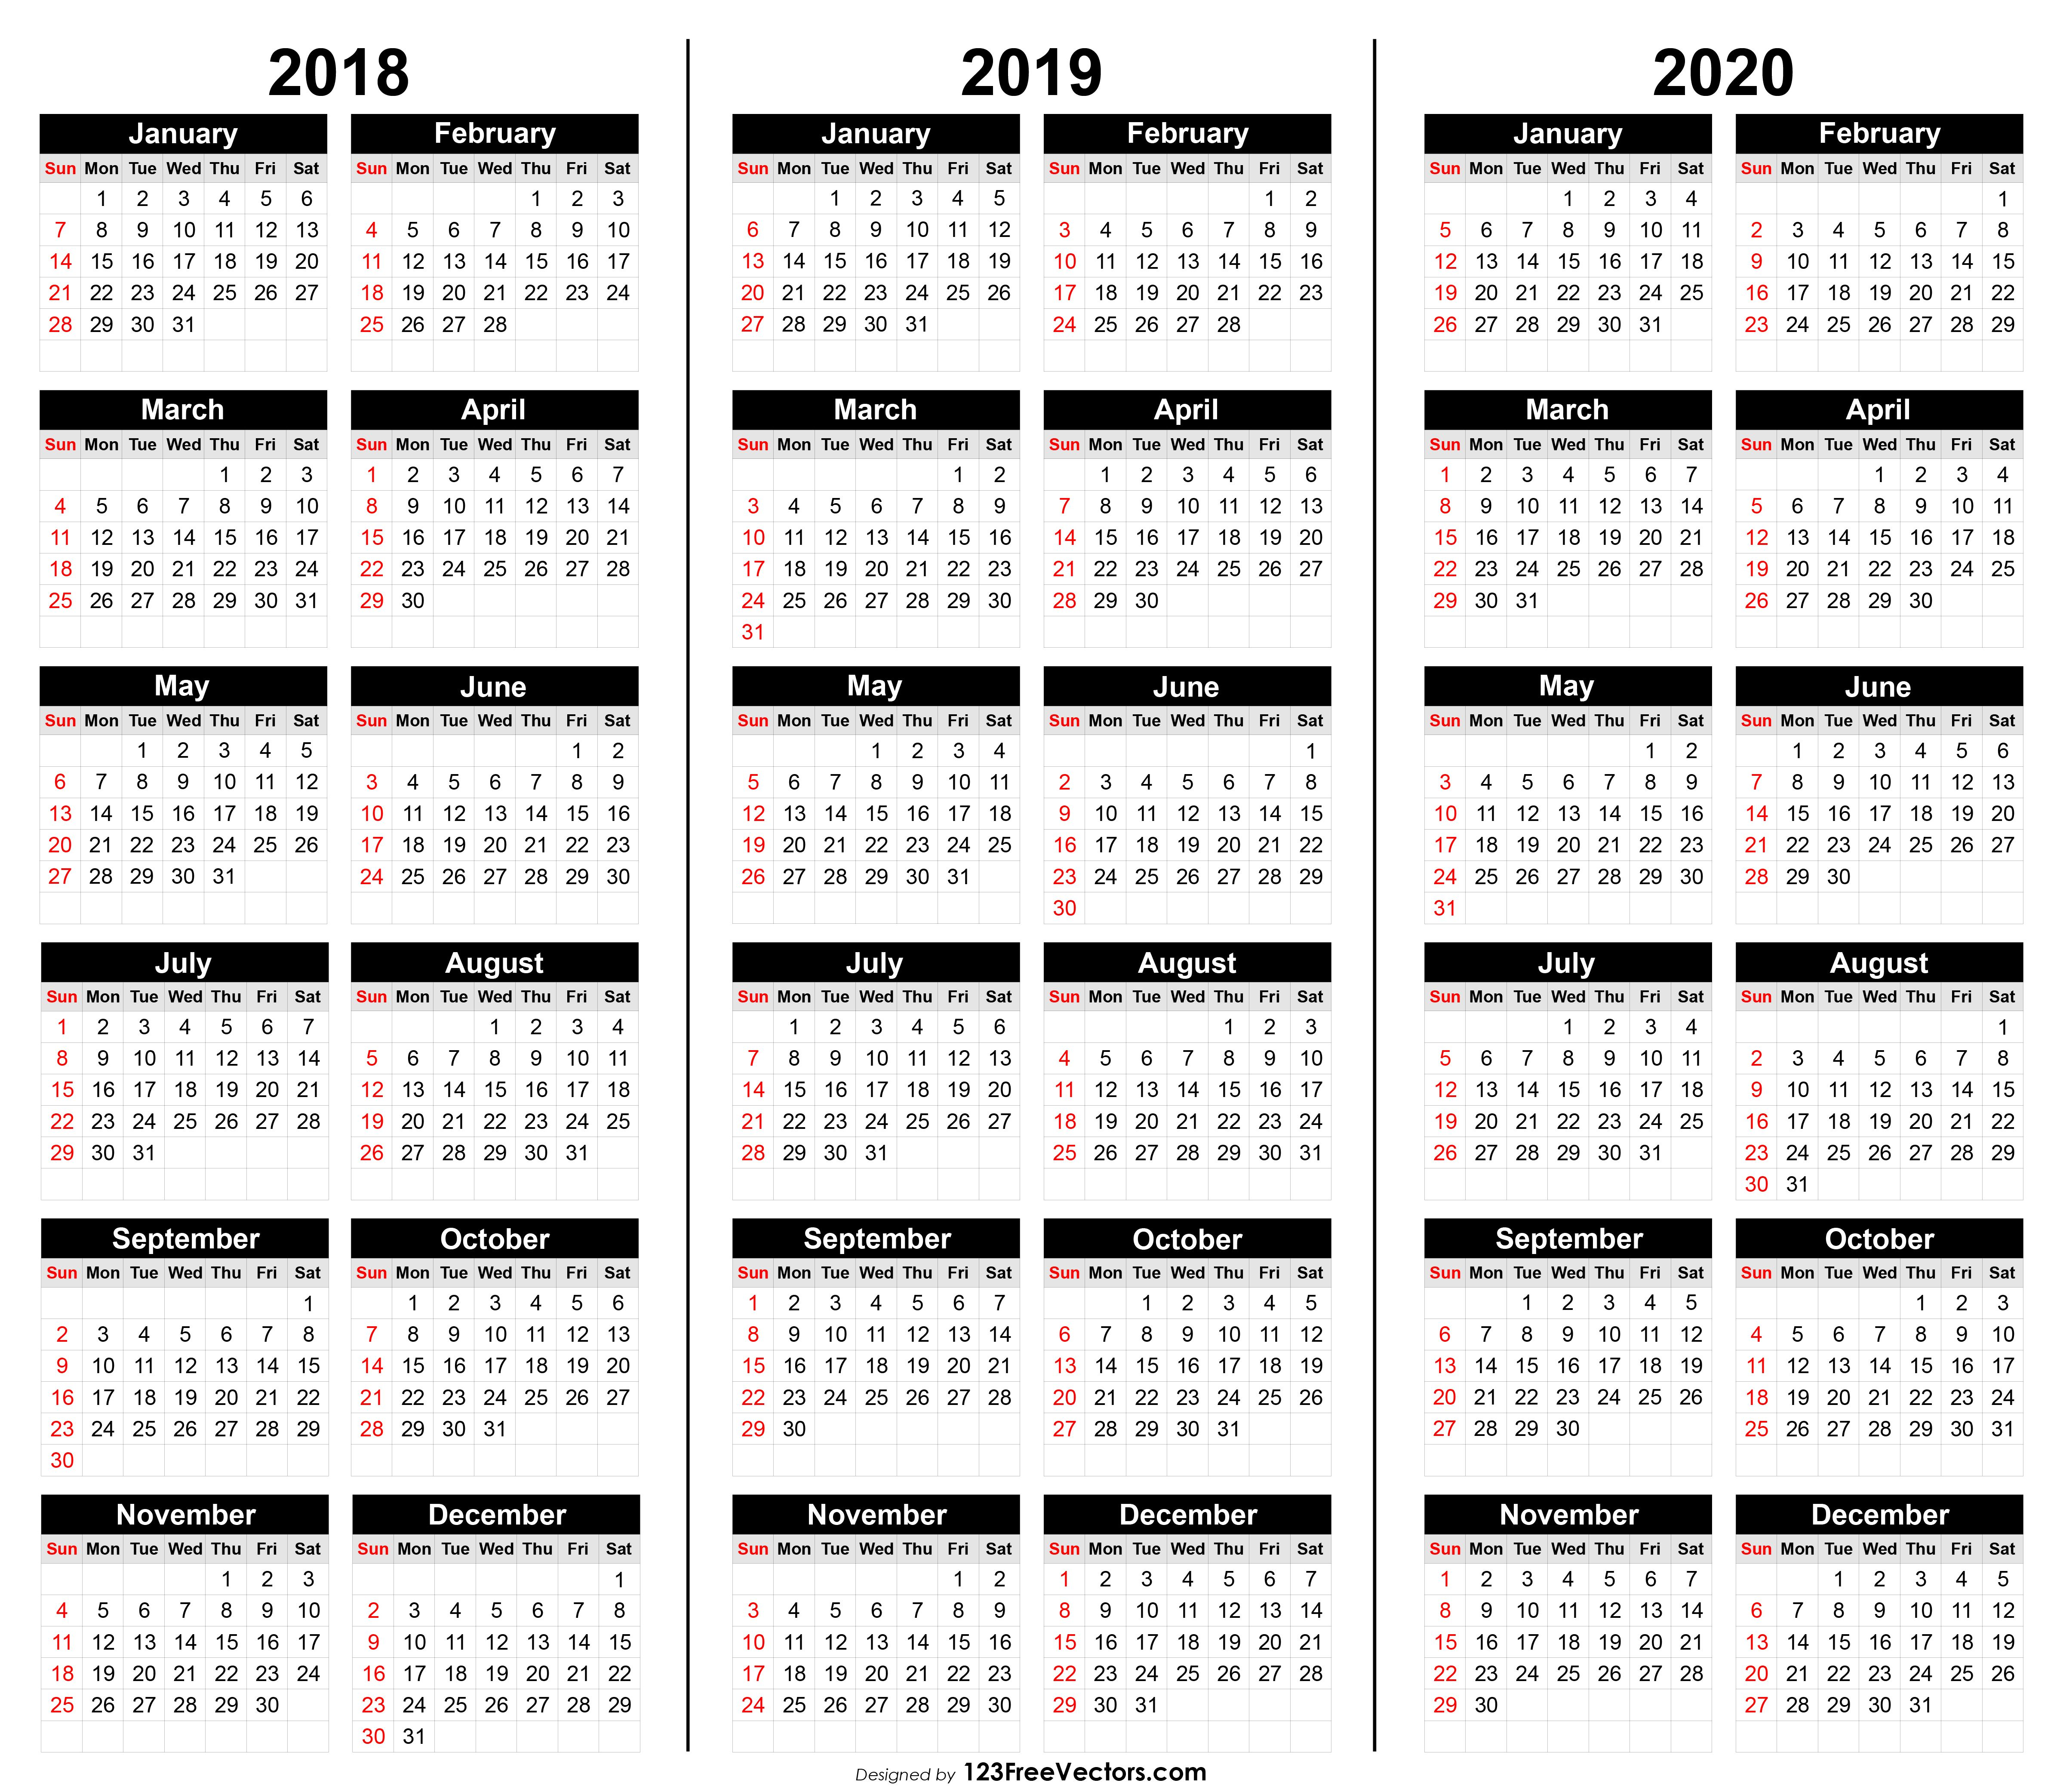 Free 3 Year Calendar 2018 2019 2020 In 2020 Calendar 2018 Calender Template Printable Yearly Calendar